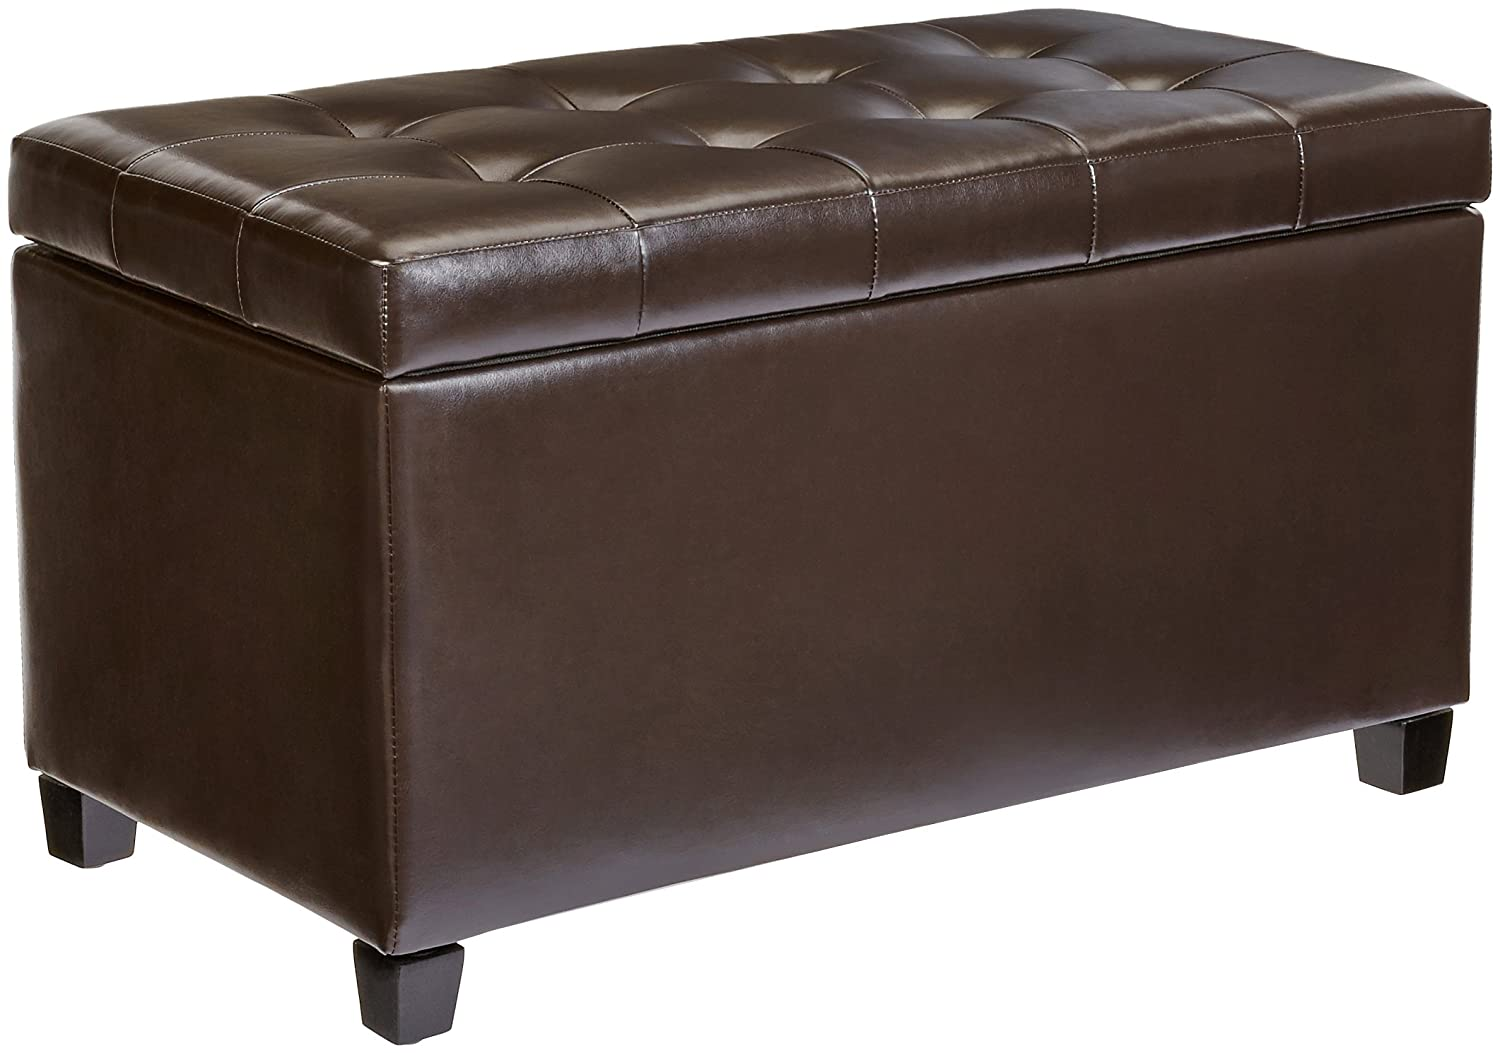 First Hill Matteo Faux-Leather Rectangular Storage Ottoman, Dark Chocolate LTD WFO102BBR